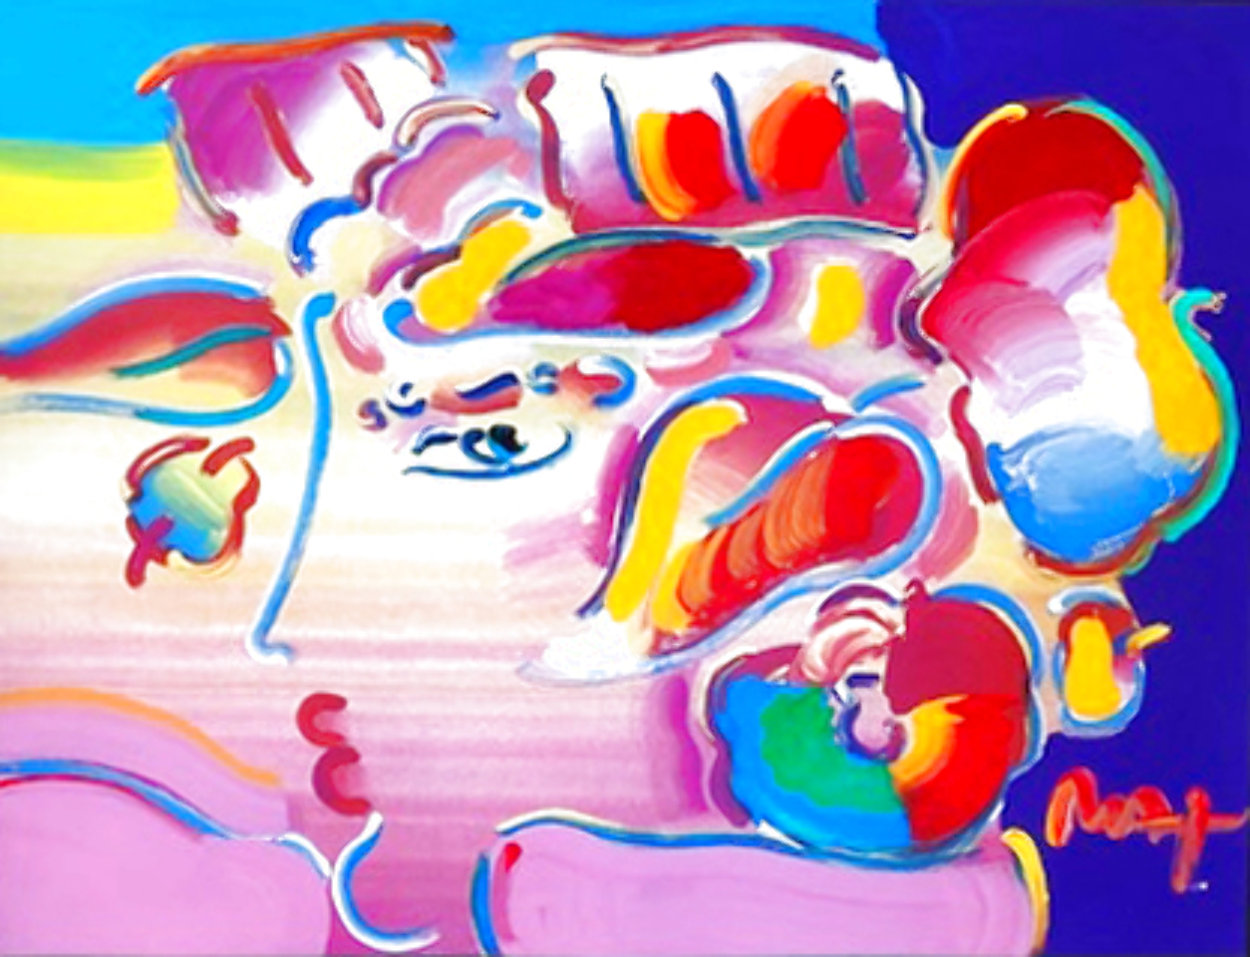 Profile Series No. 7 Unique 2001 33x39 Works on Paper (not prints) by Peter Max